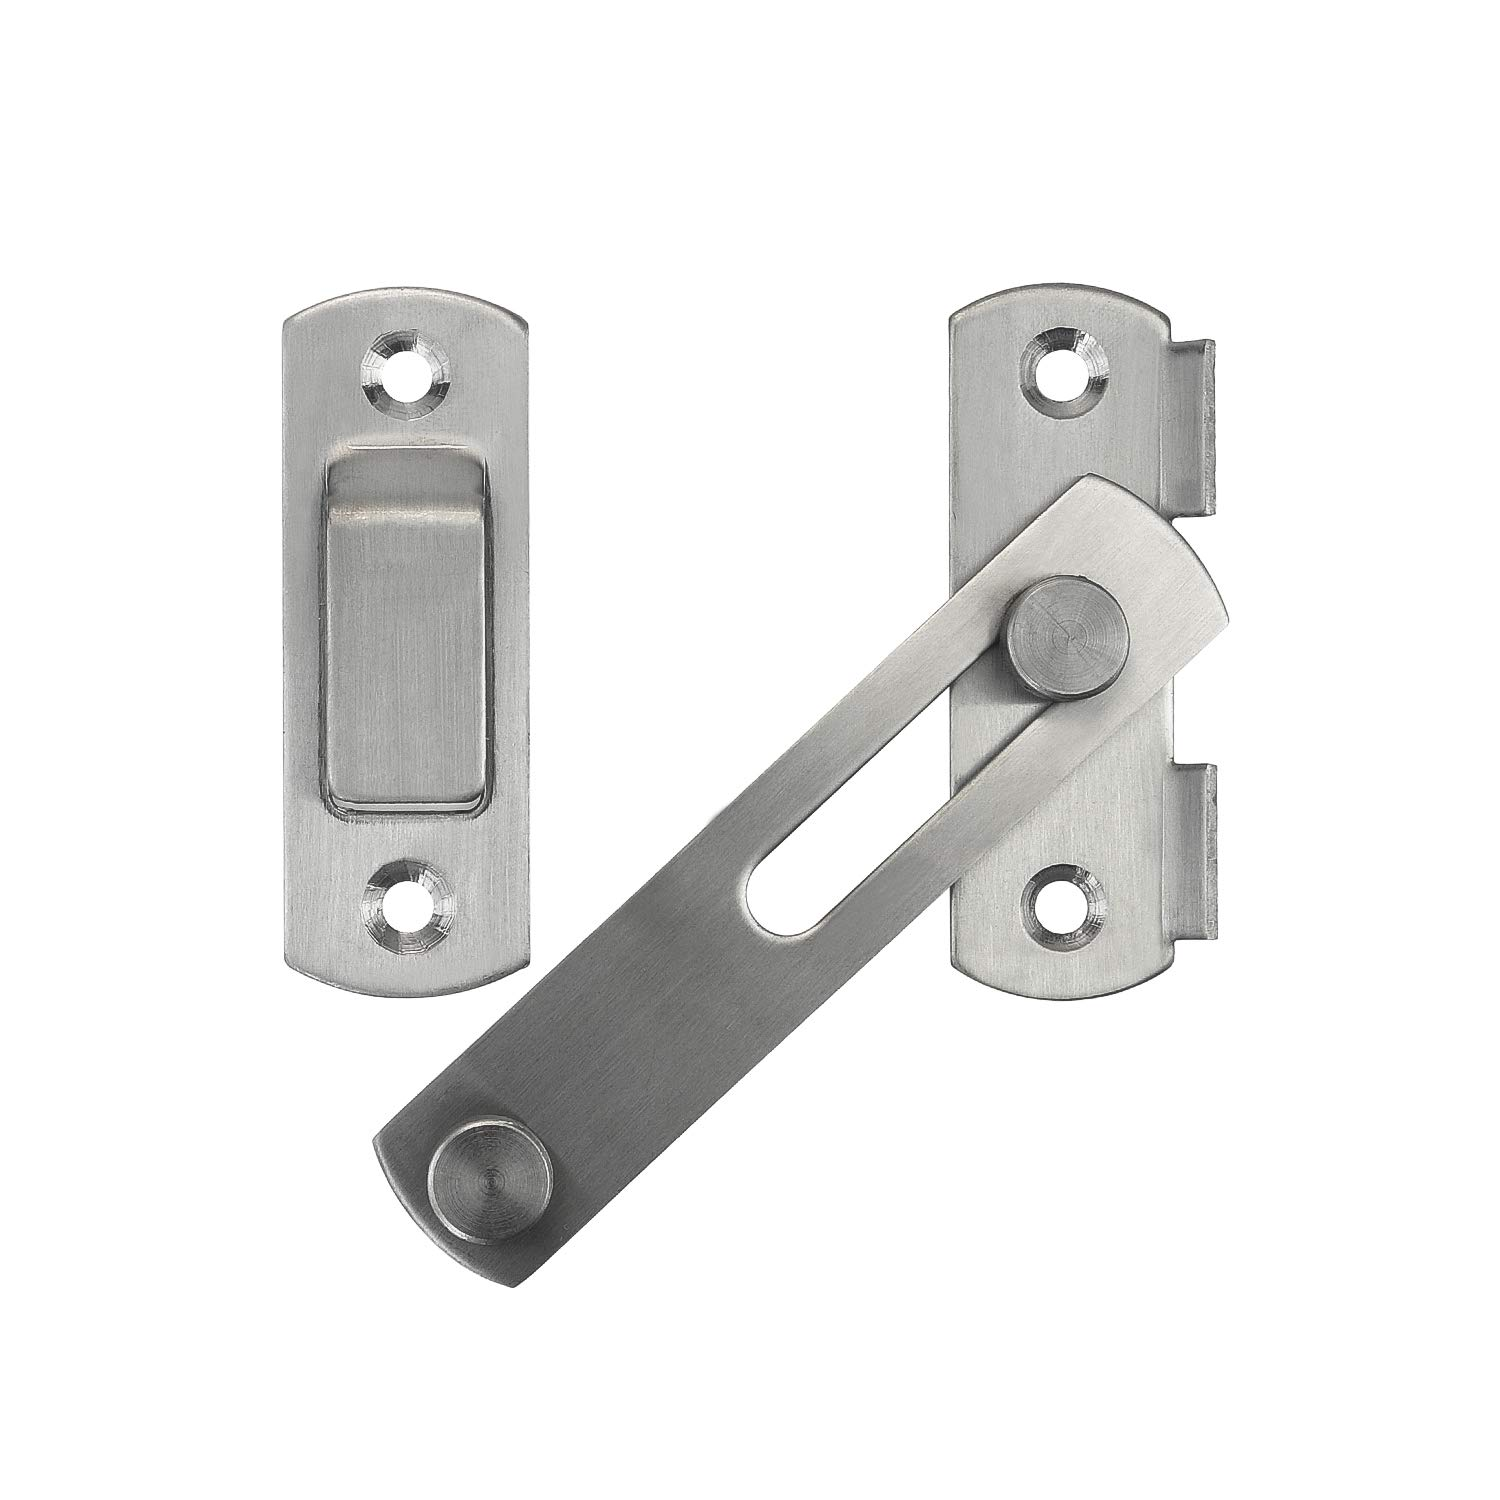 2 Pack Favordrory Stainless Steel Flip Latch Gate Latches Bar Latch Safety Door Lock for Pet Gate,Cabinet Furniture Window,Brushed Finish